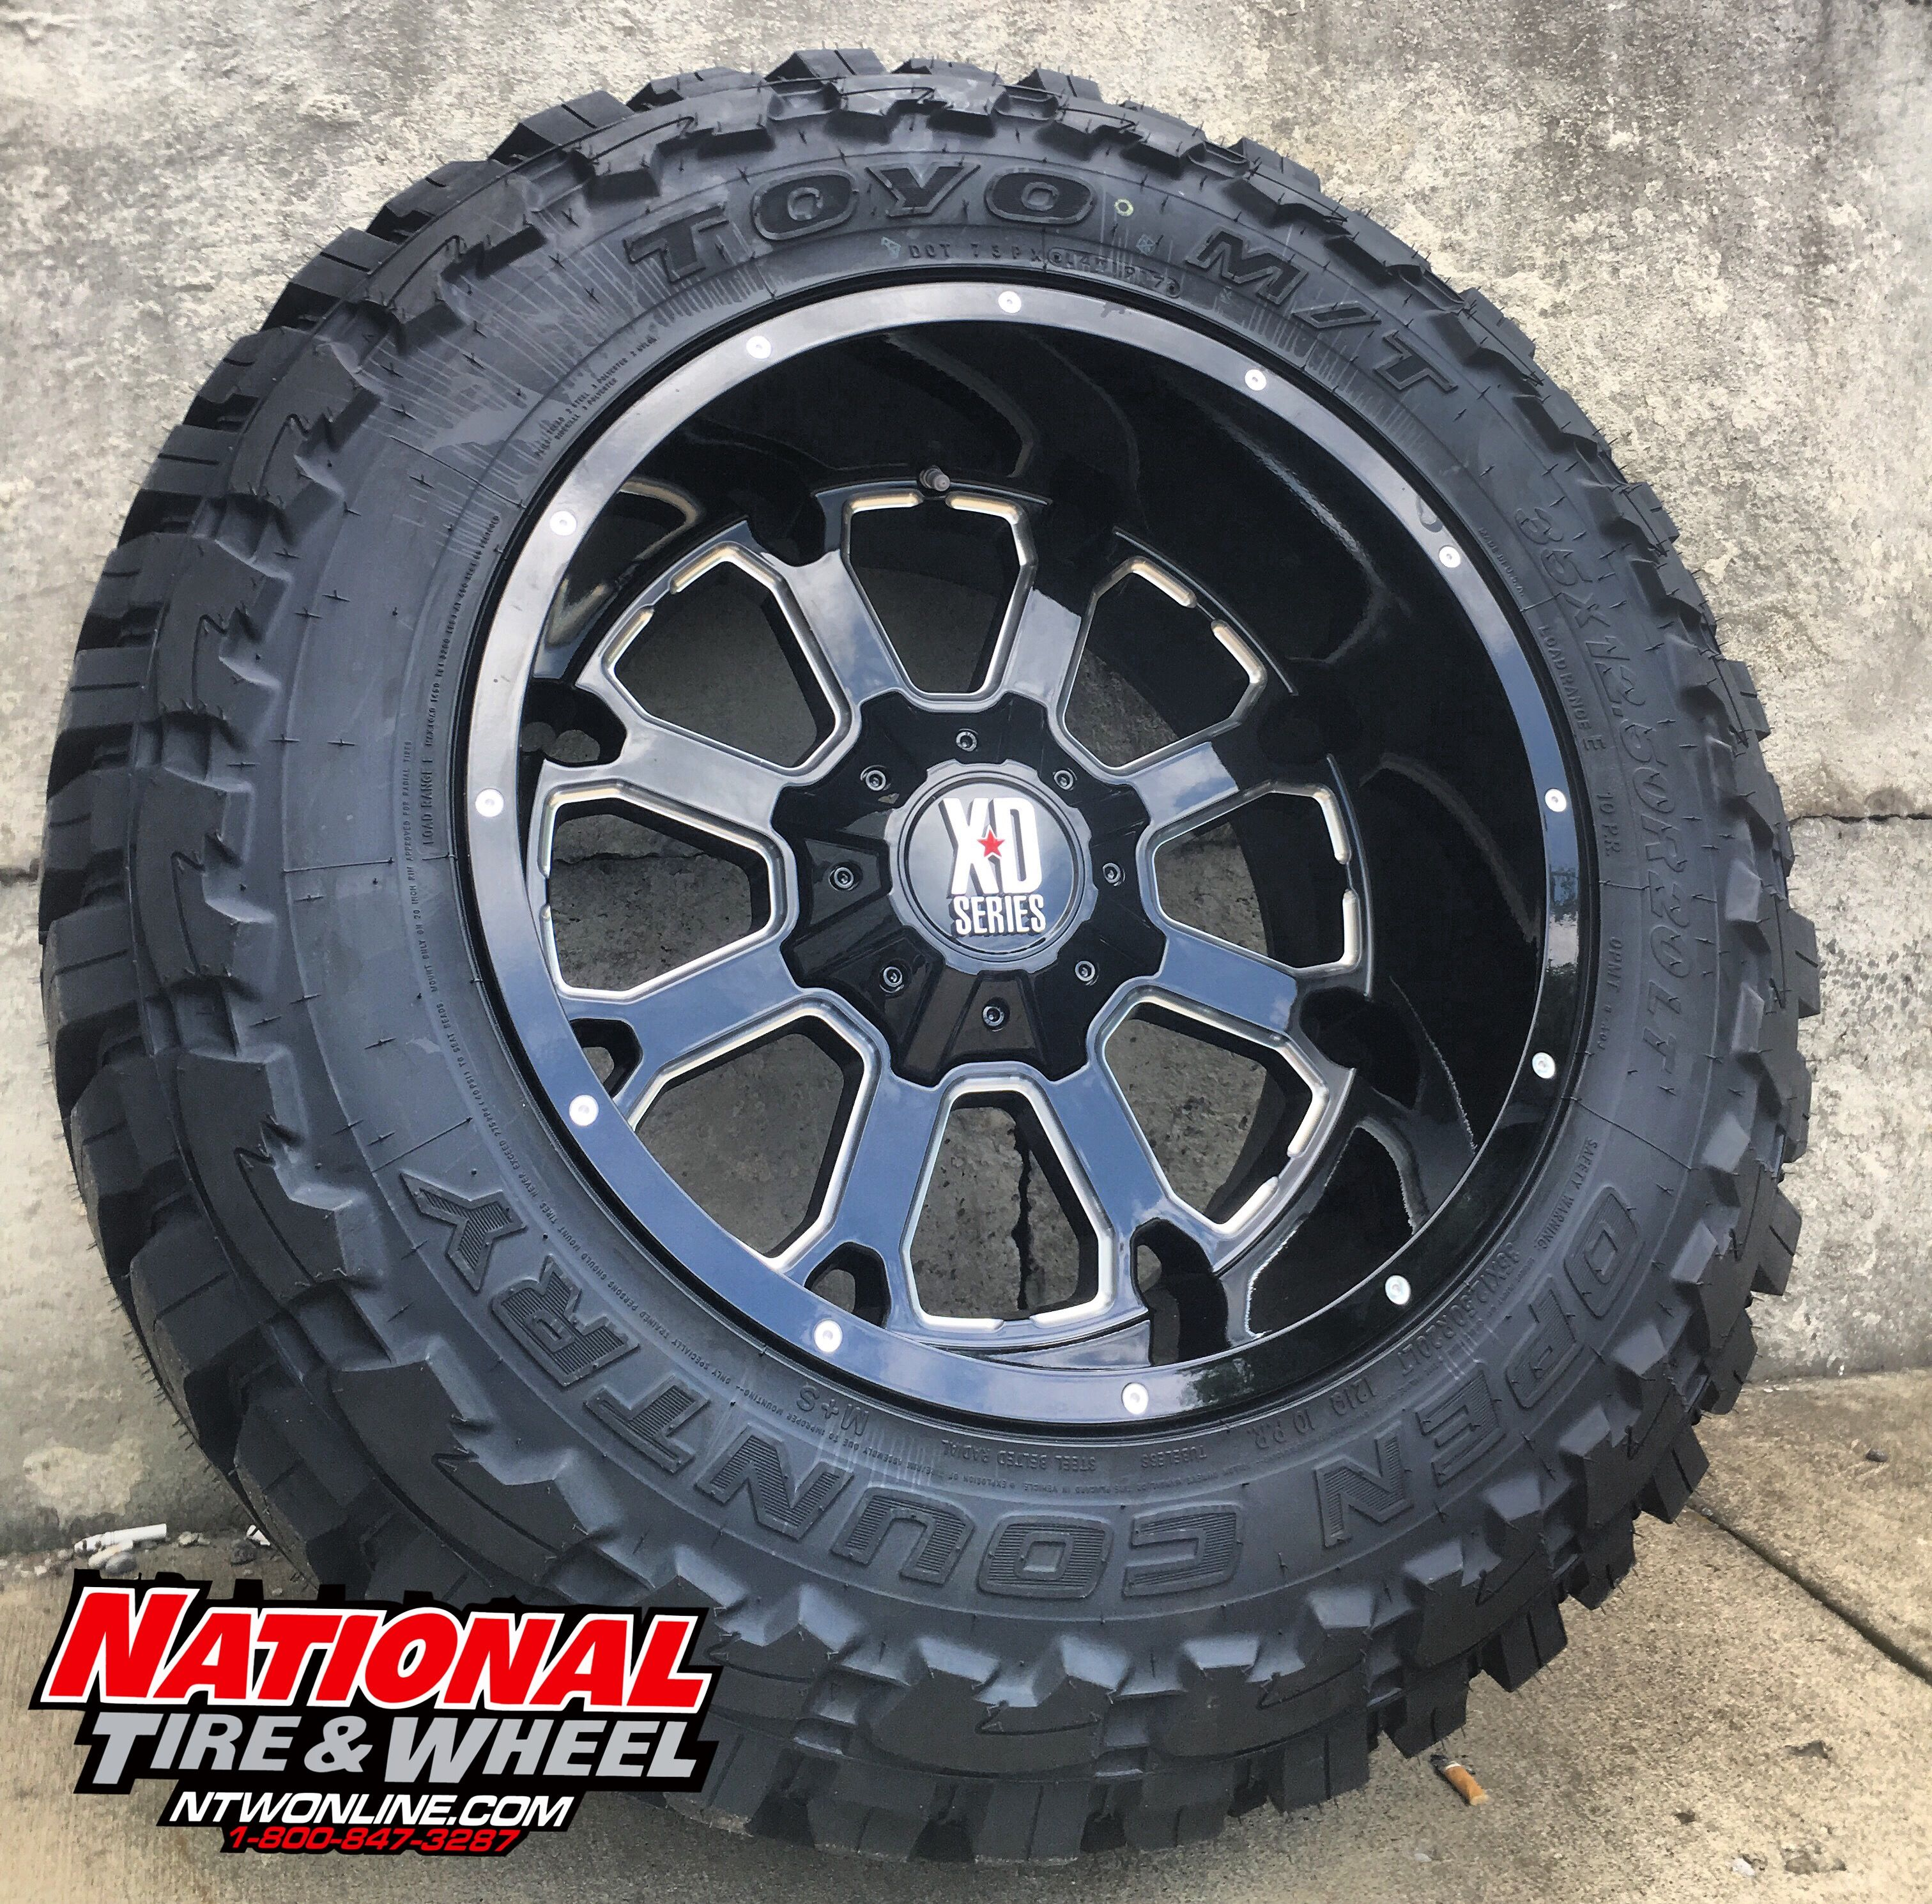 20X12 XD Series 825 Buck mounted up to a 35X12 50R20 Toyo Open